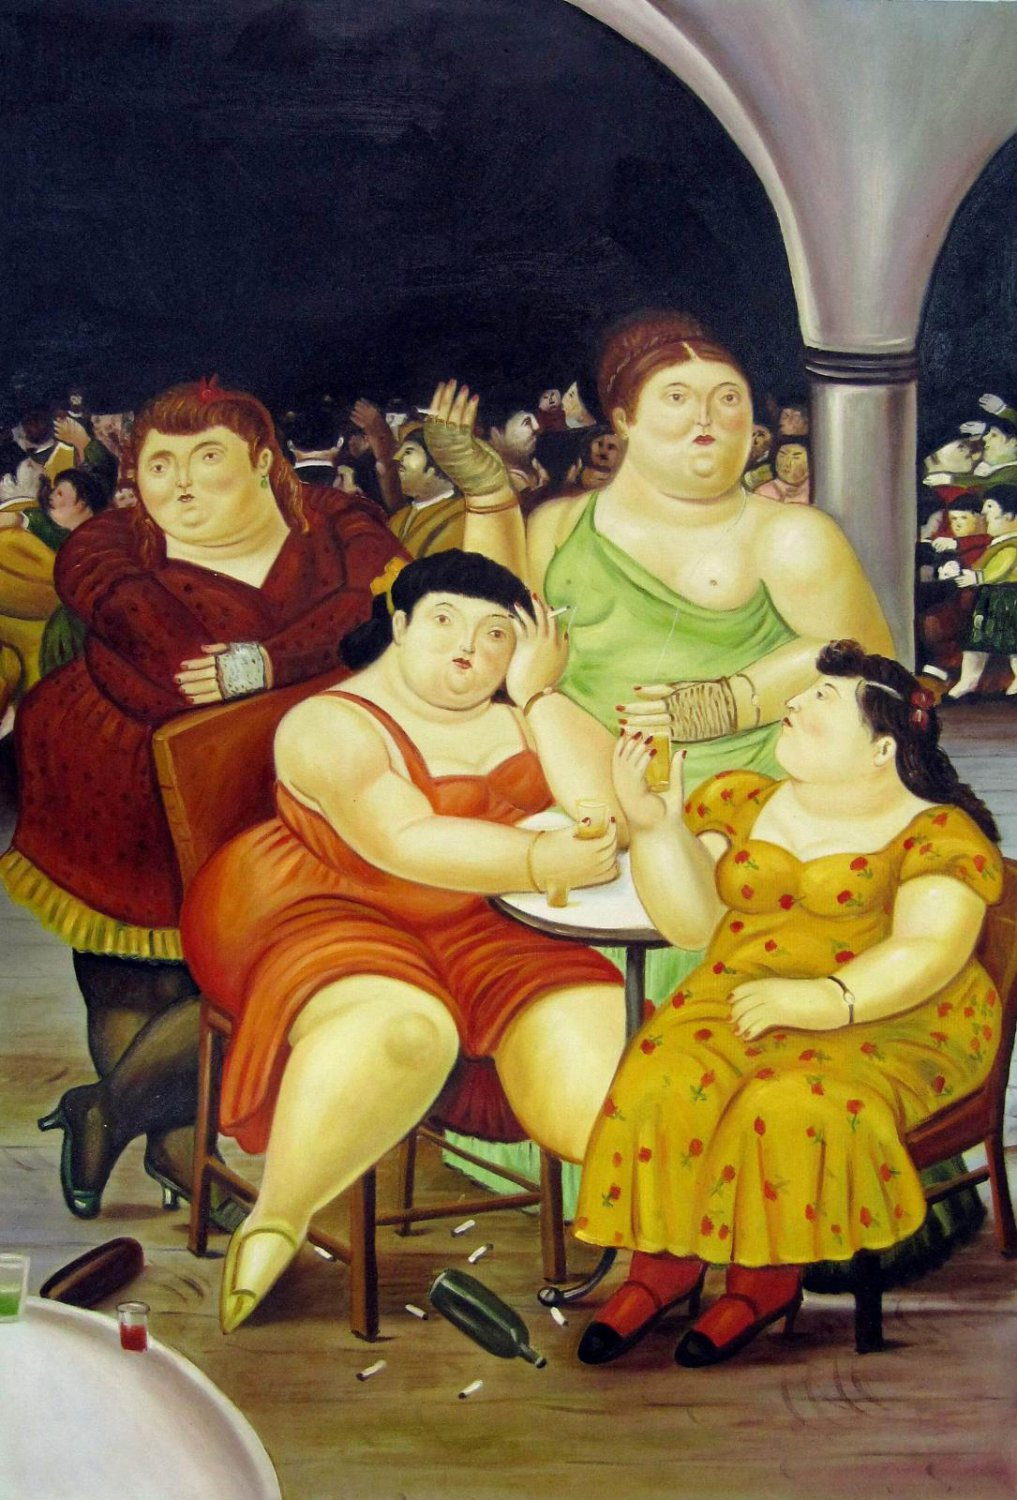 Rep. Fernando Botero 24x36 in. stretched Oil Painting Canvas Art Wall Decor modern31D